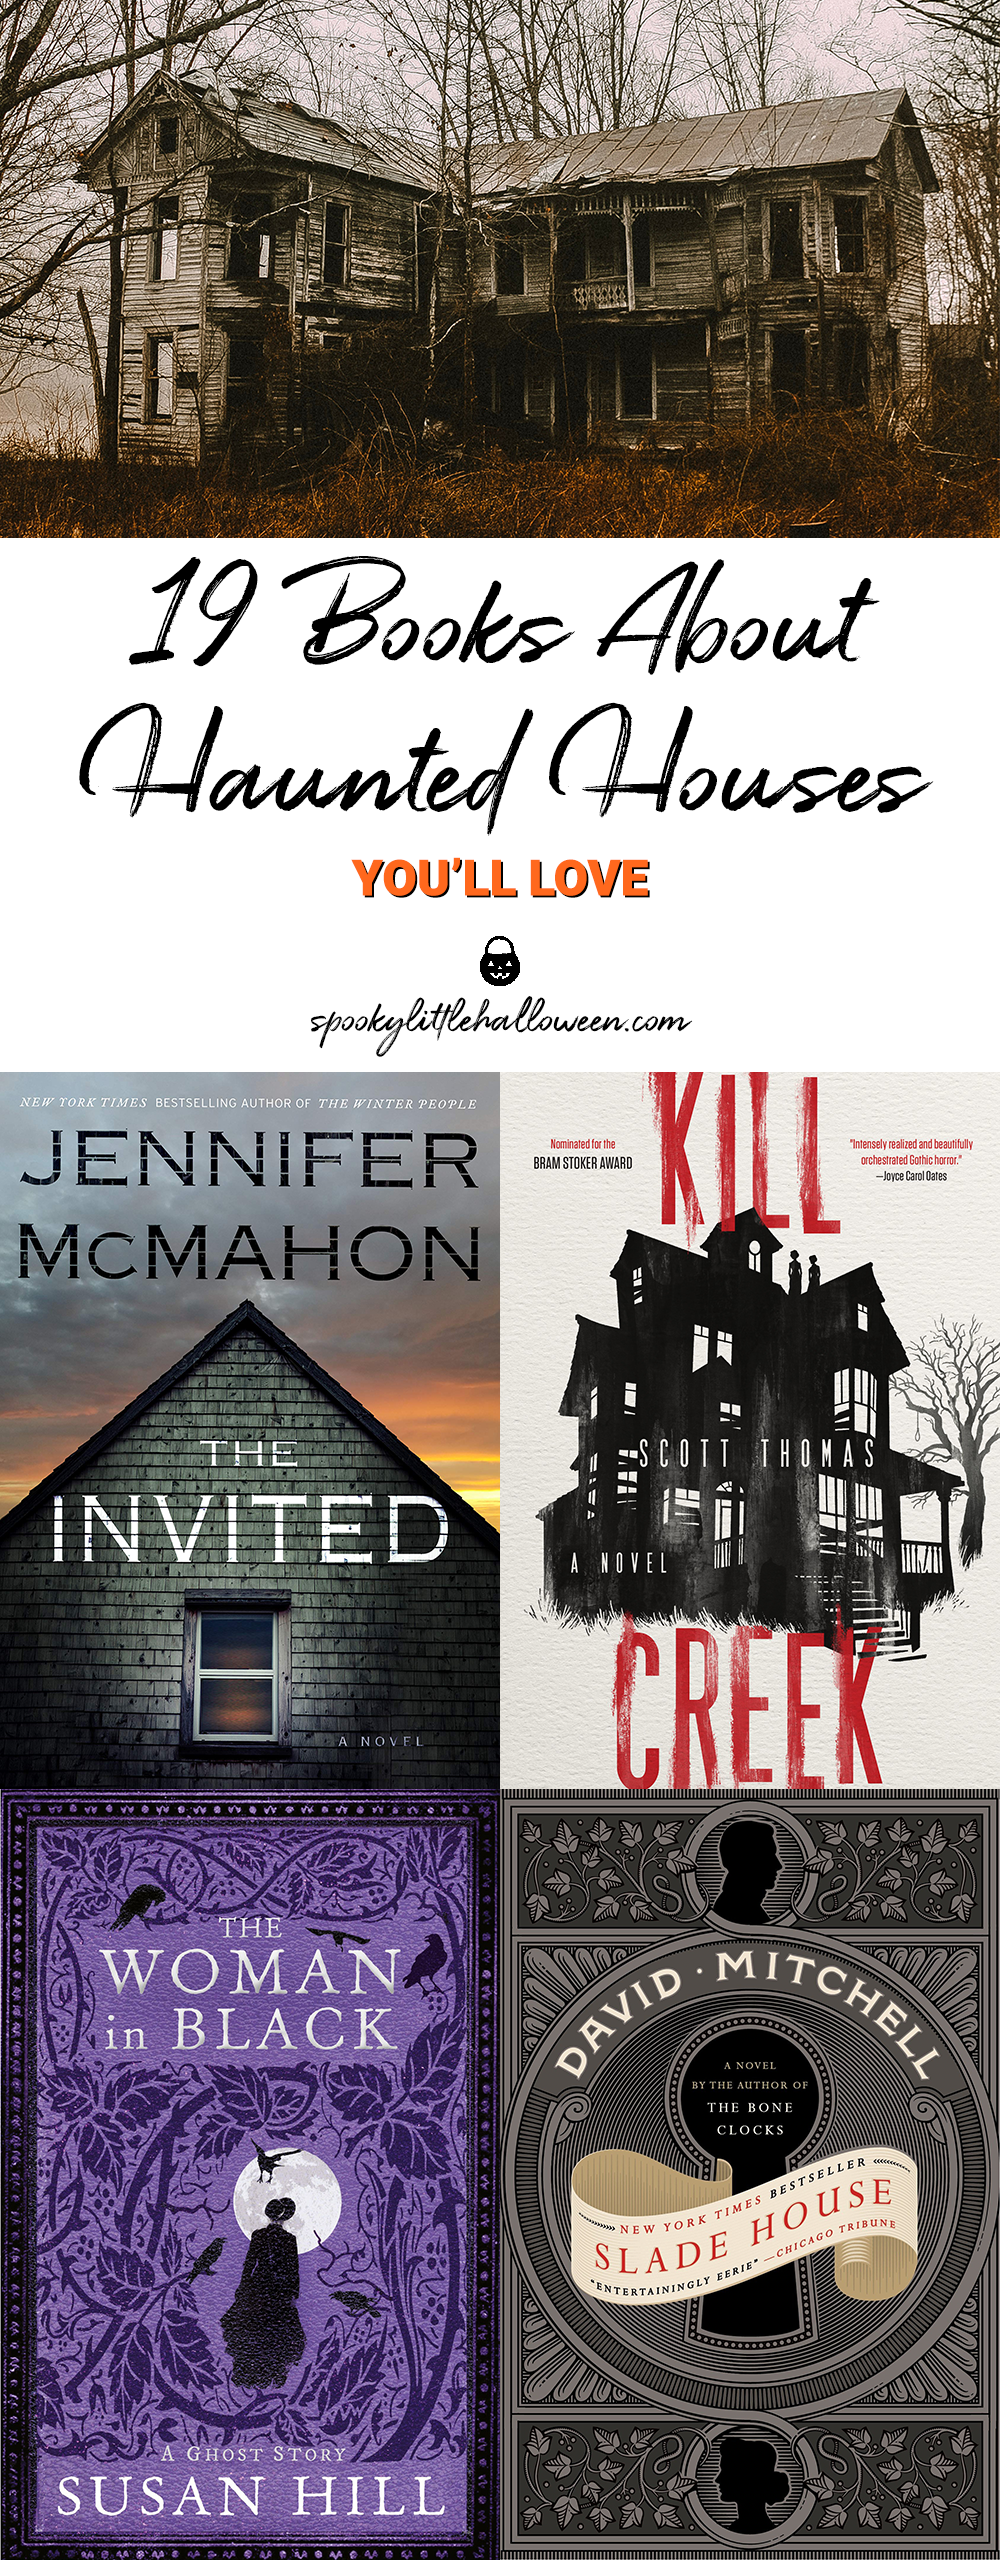 19 Books About Haunted Houses You'll Love - Spooky Little